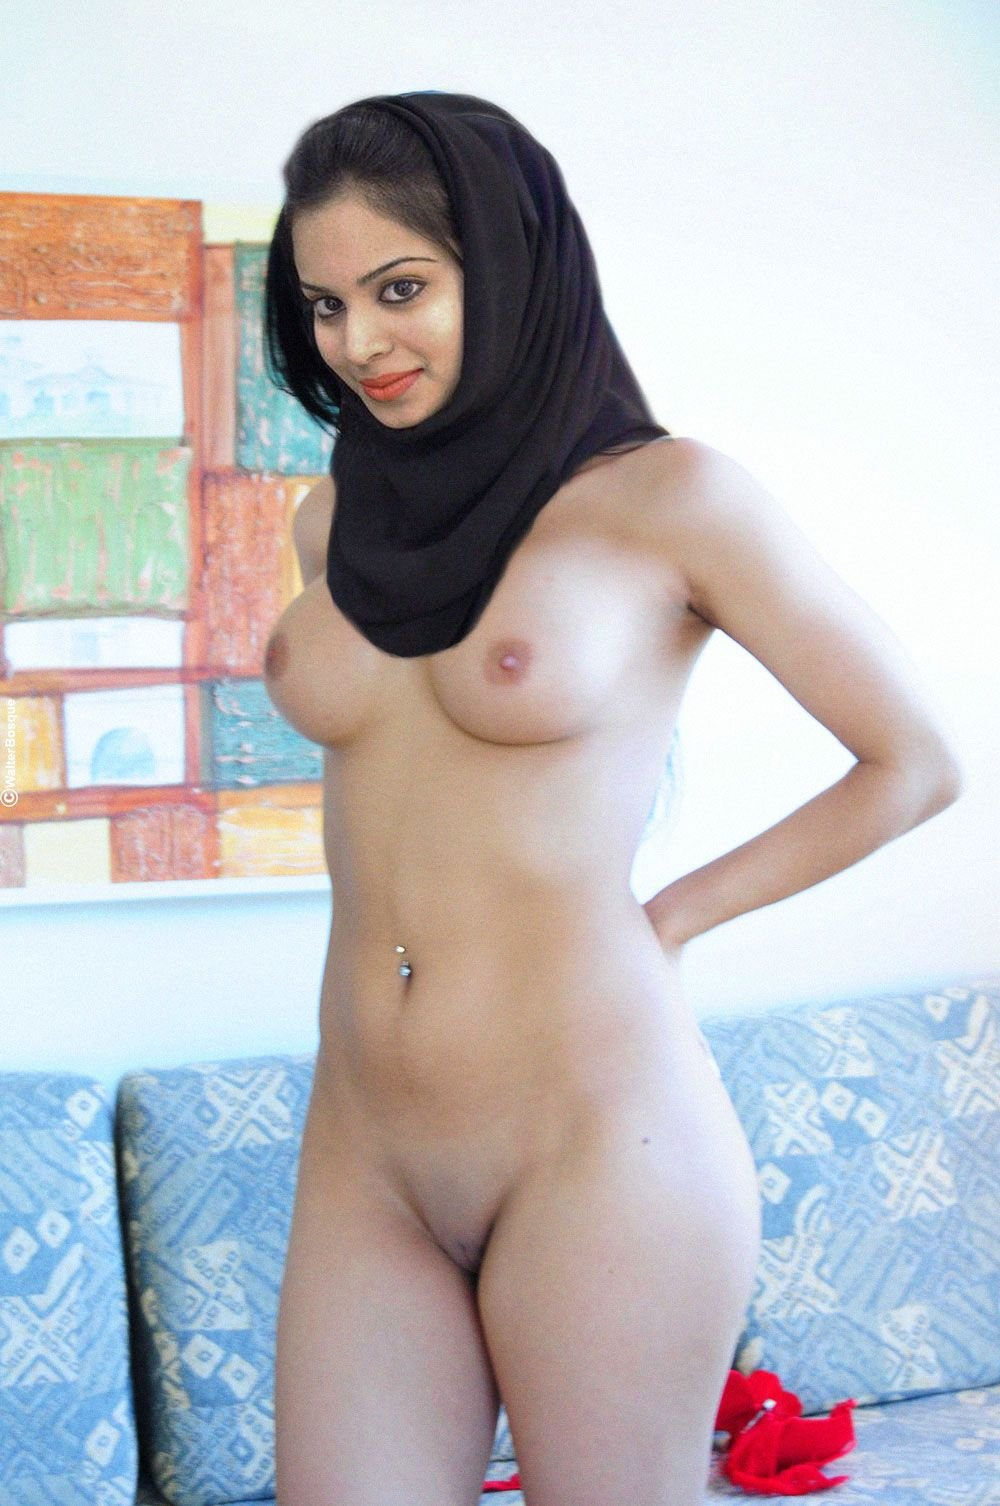 Young chechnya girl indian sex pics